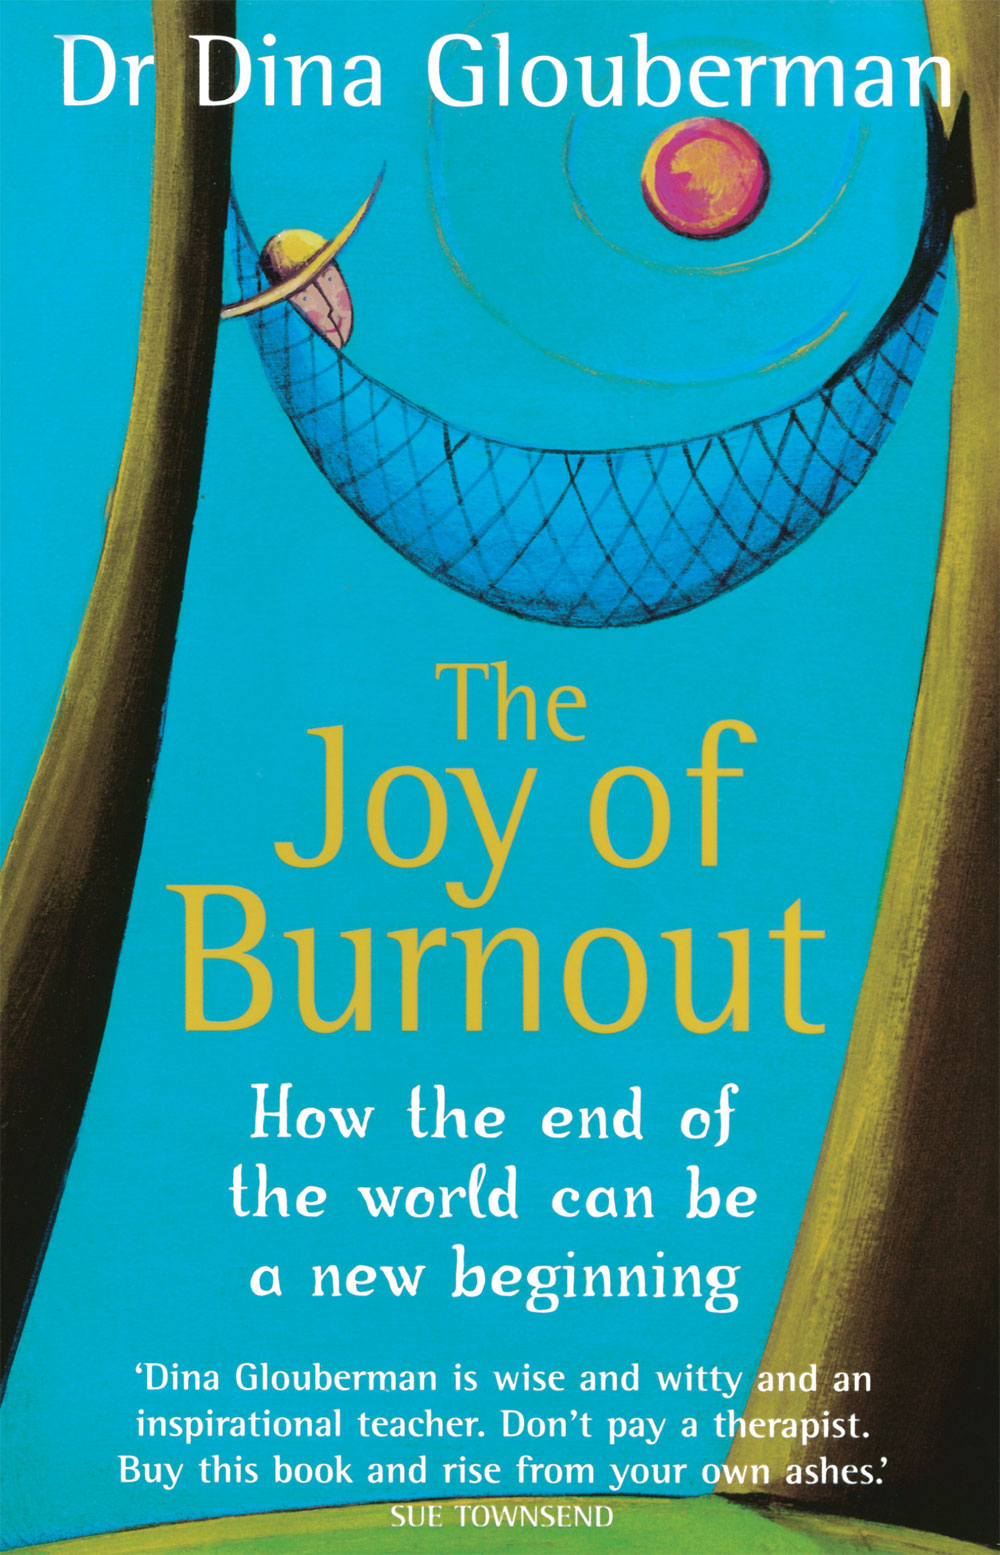 Book: The Joy of Burnout